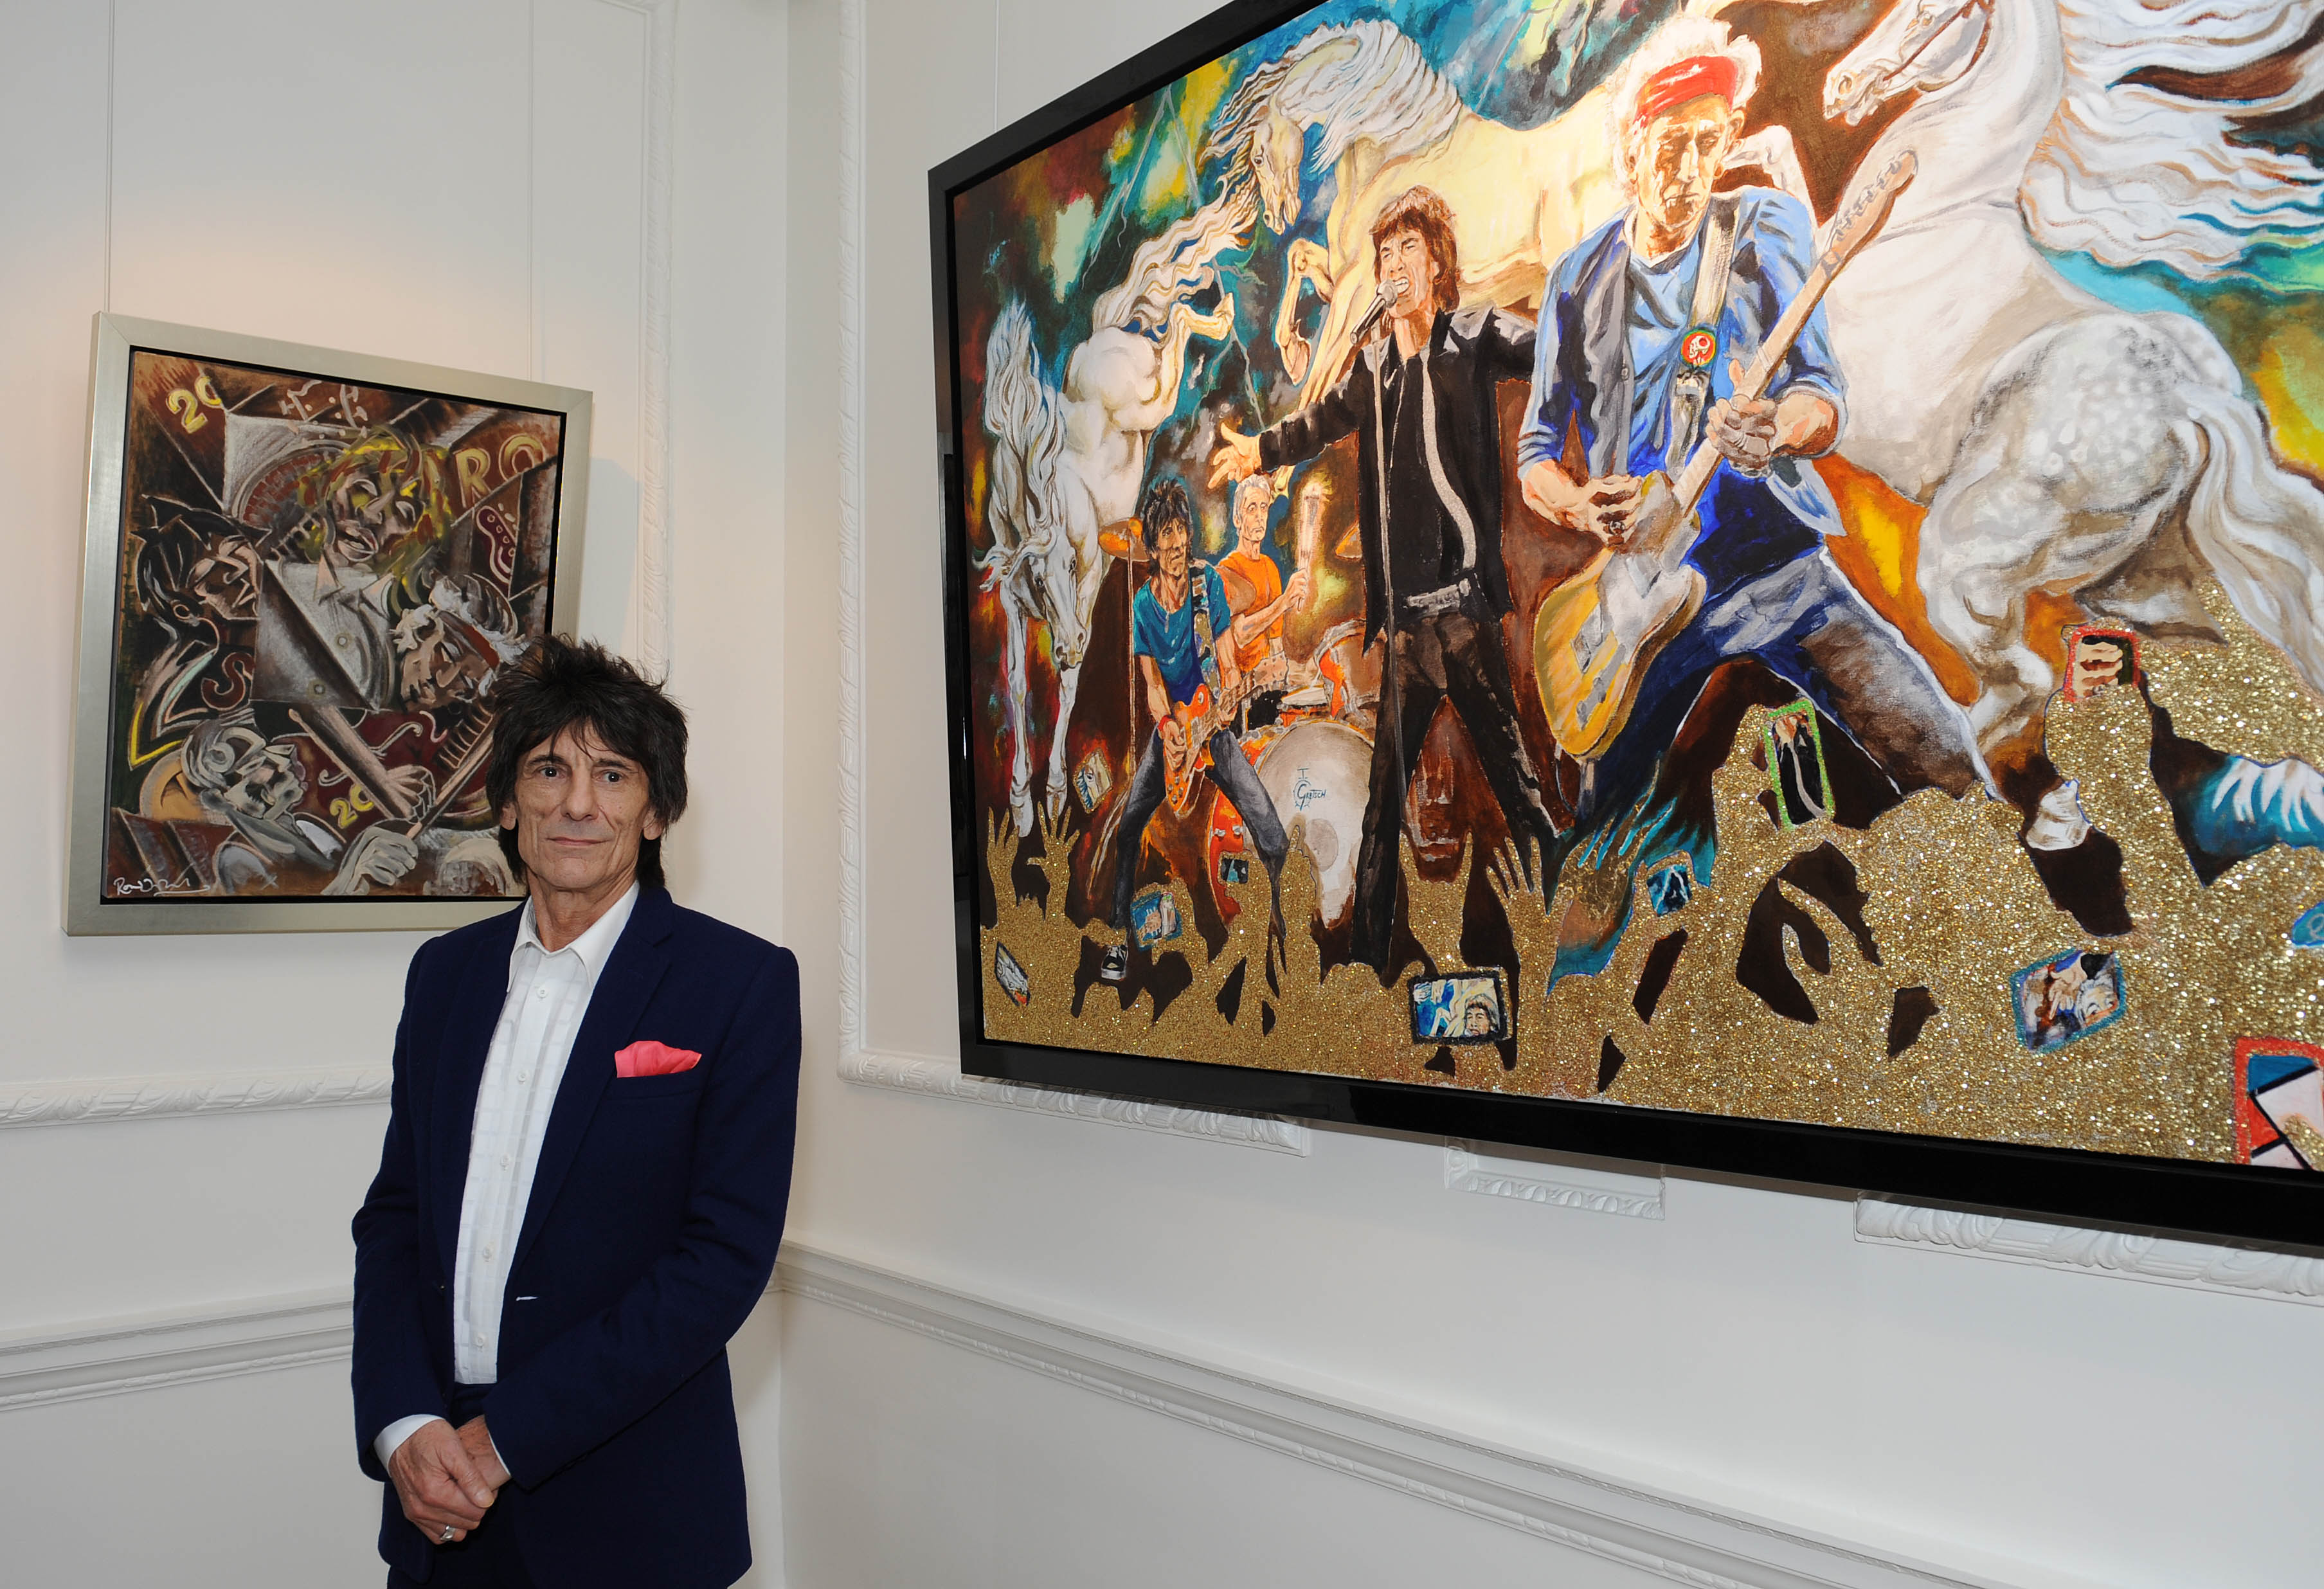 Rolling Stones Ron Wood, Ron Wood artist, Ronnie Wood paintings, Ron Wood art exhibit, celebs, movies/tv